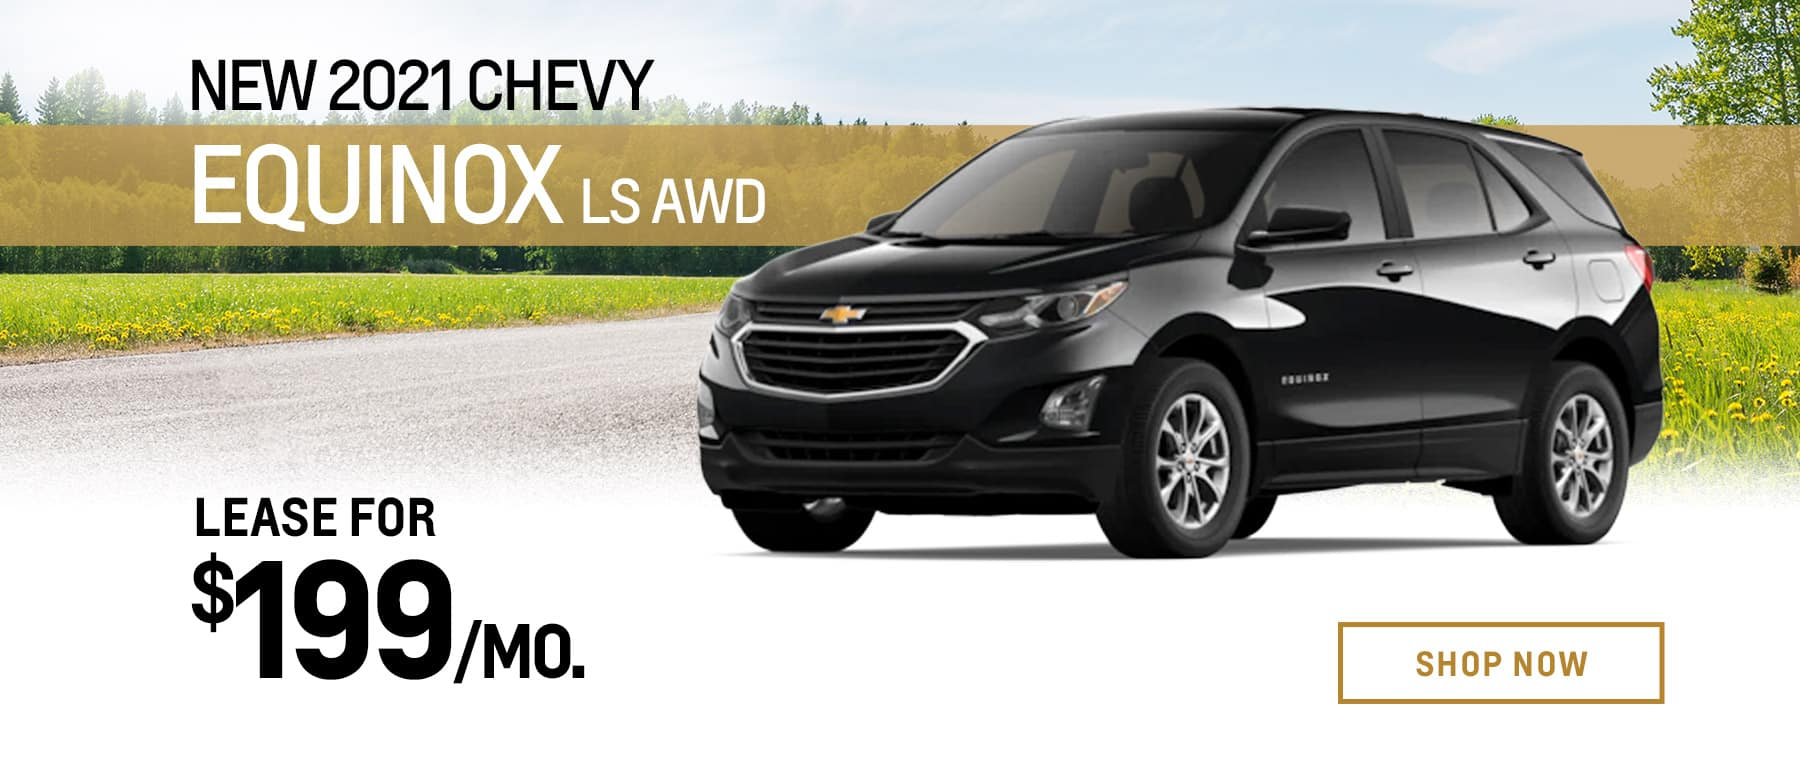 BCO-1800×760-New 2021 Chevy Equinox LS AWD_-0721